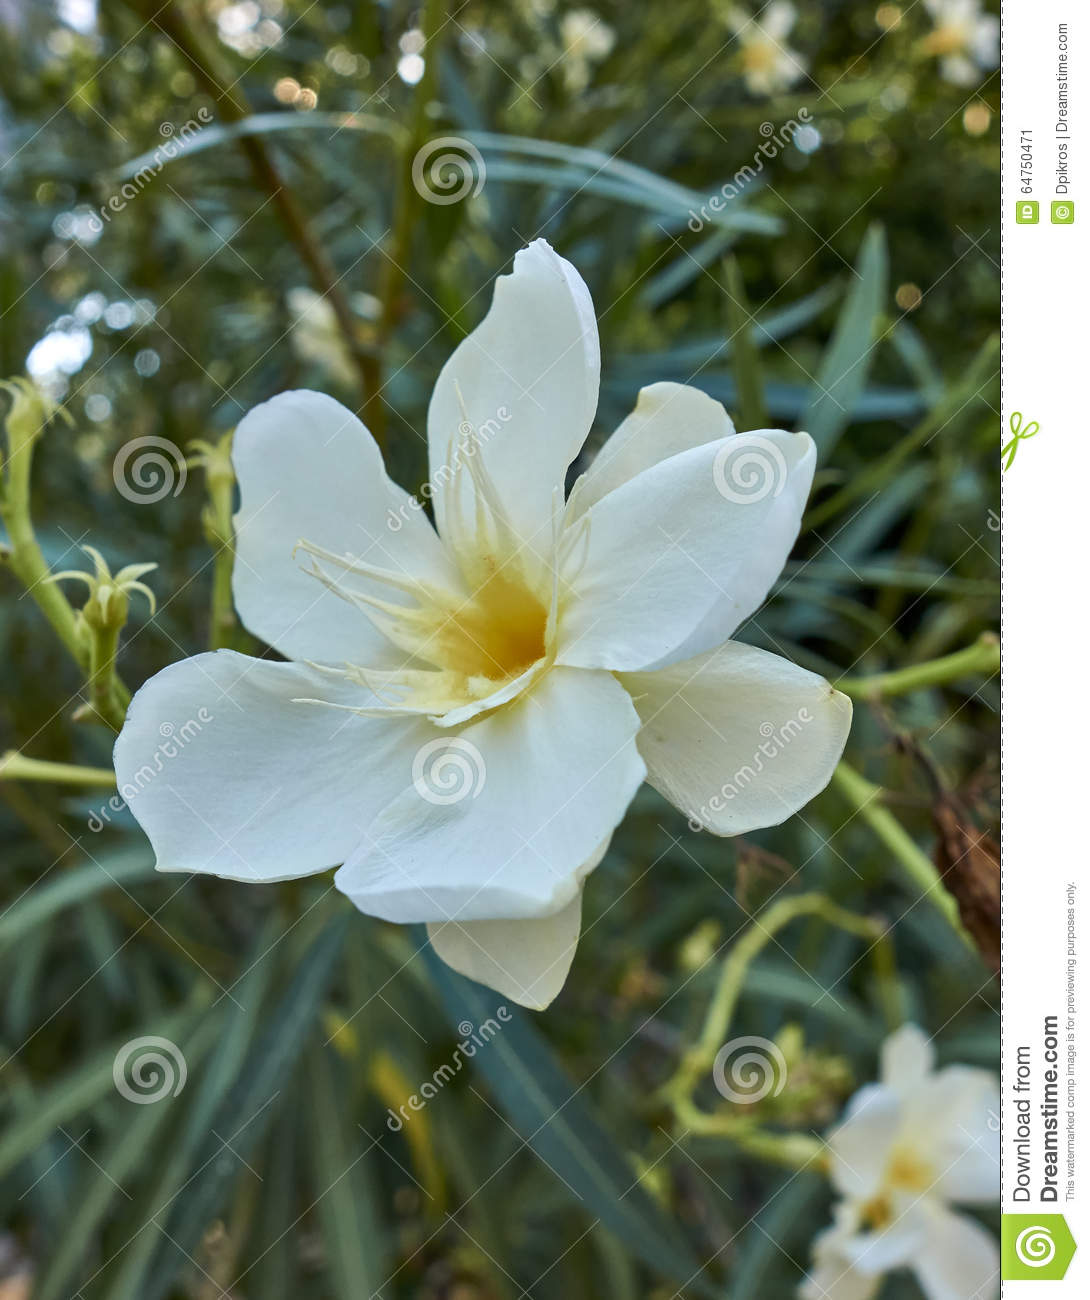 One White Oleander Flower Closeup Stock Image Image Of Leaf